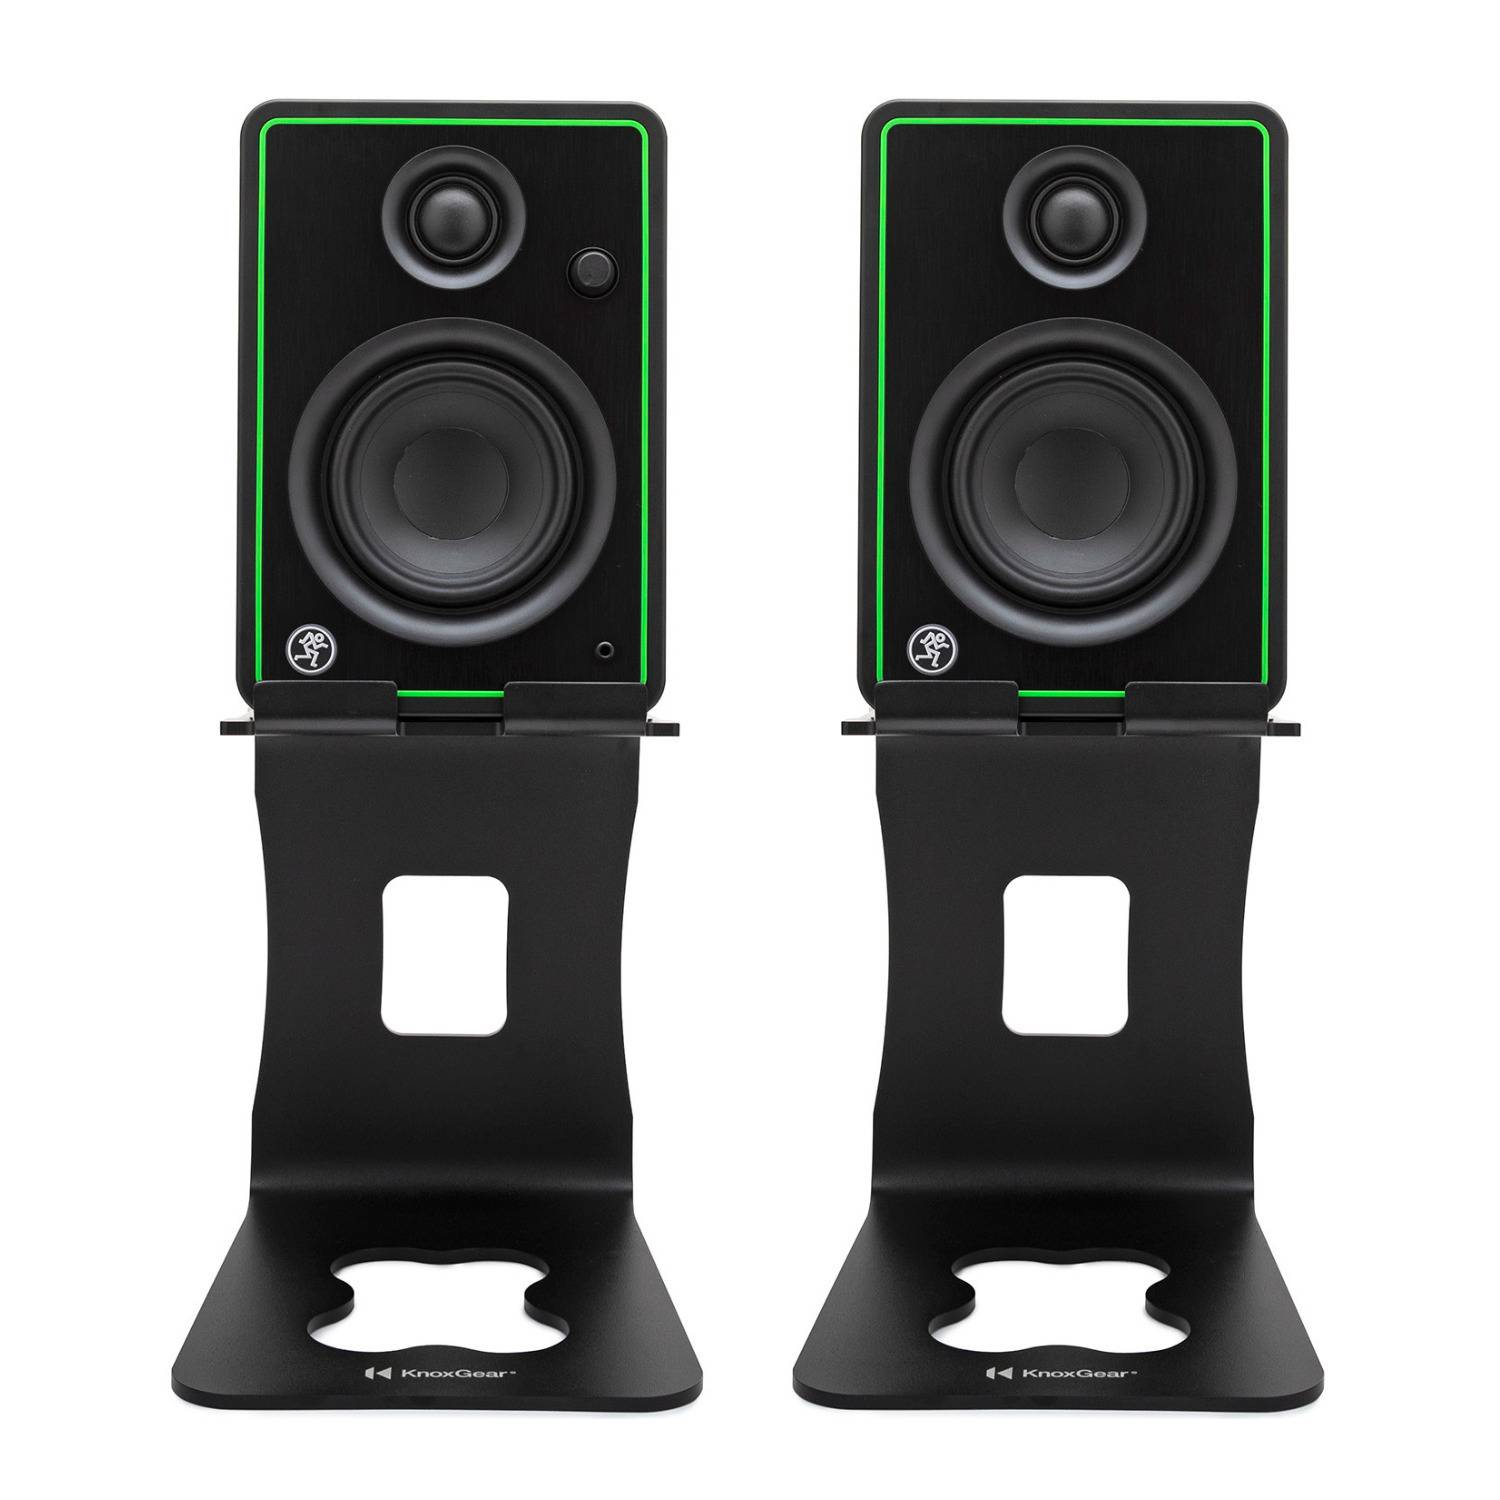 Mackie CR4-X 4-Inch Multimedia Monitors (Pair) Bundle with Knox Gear Monitor Stands